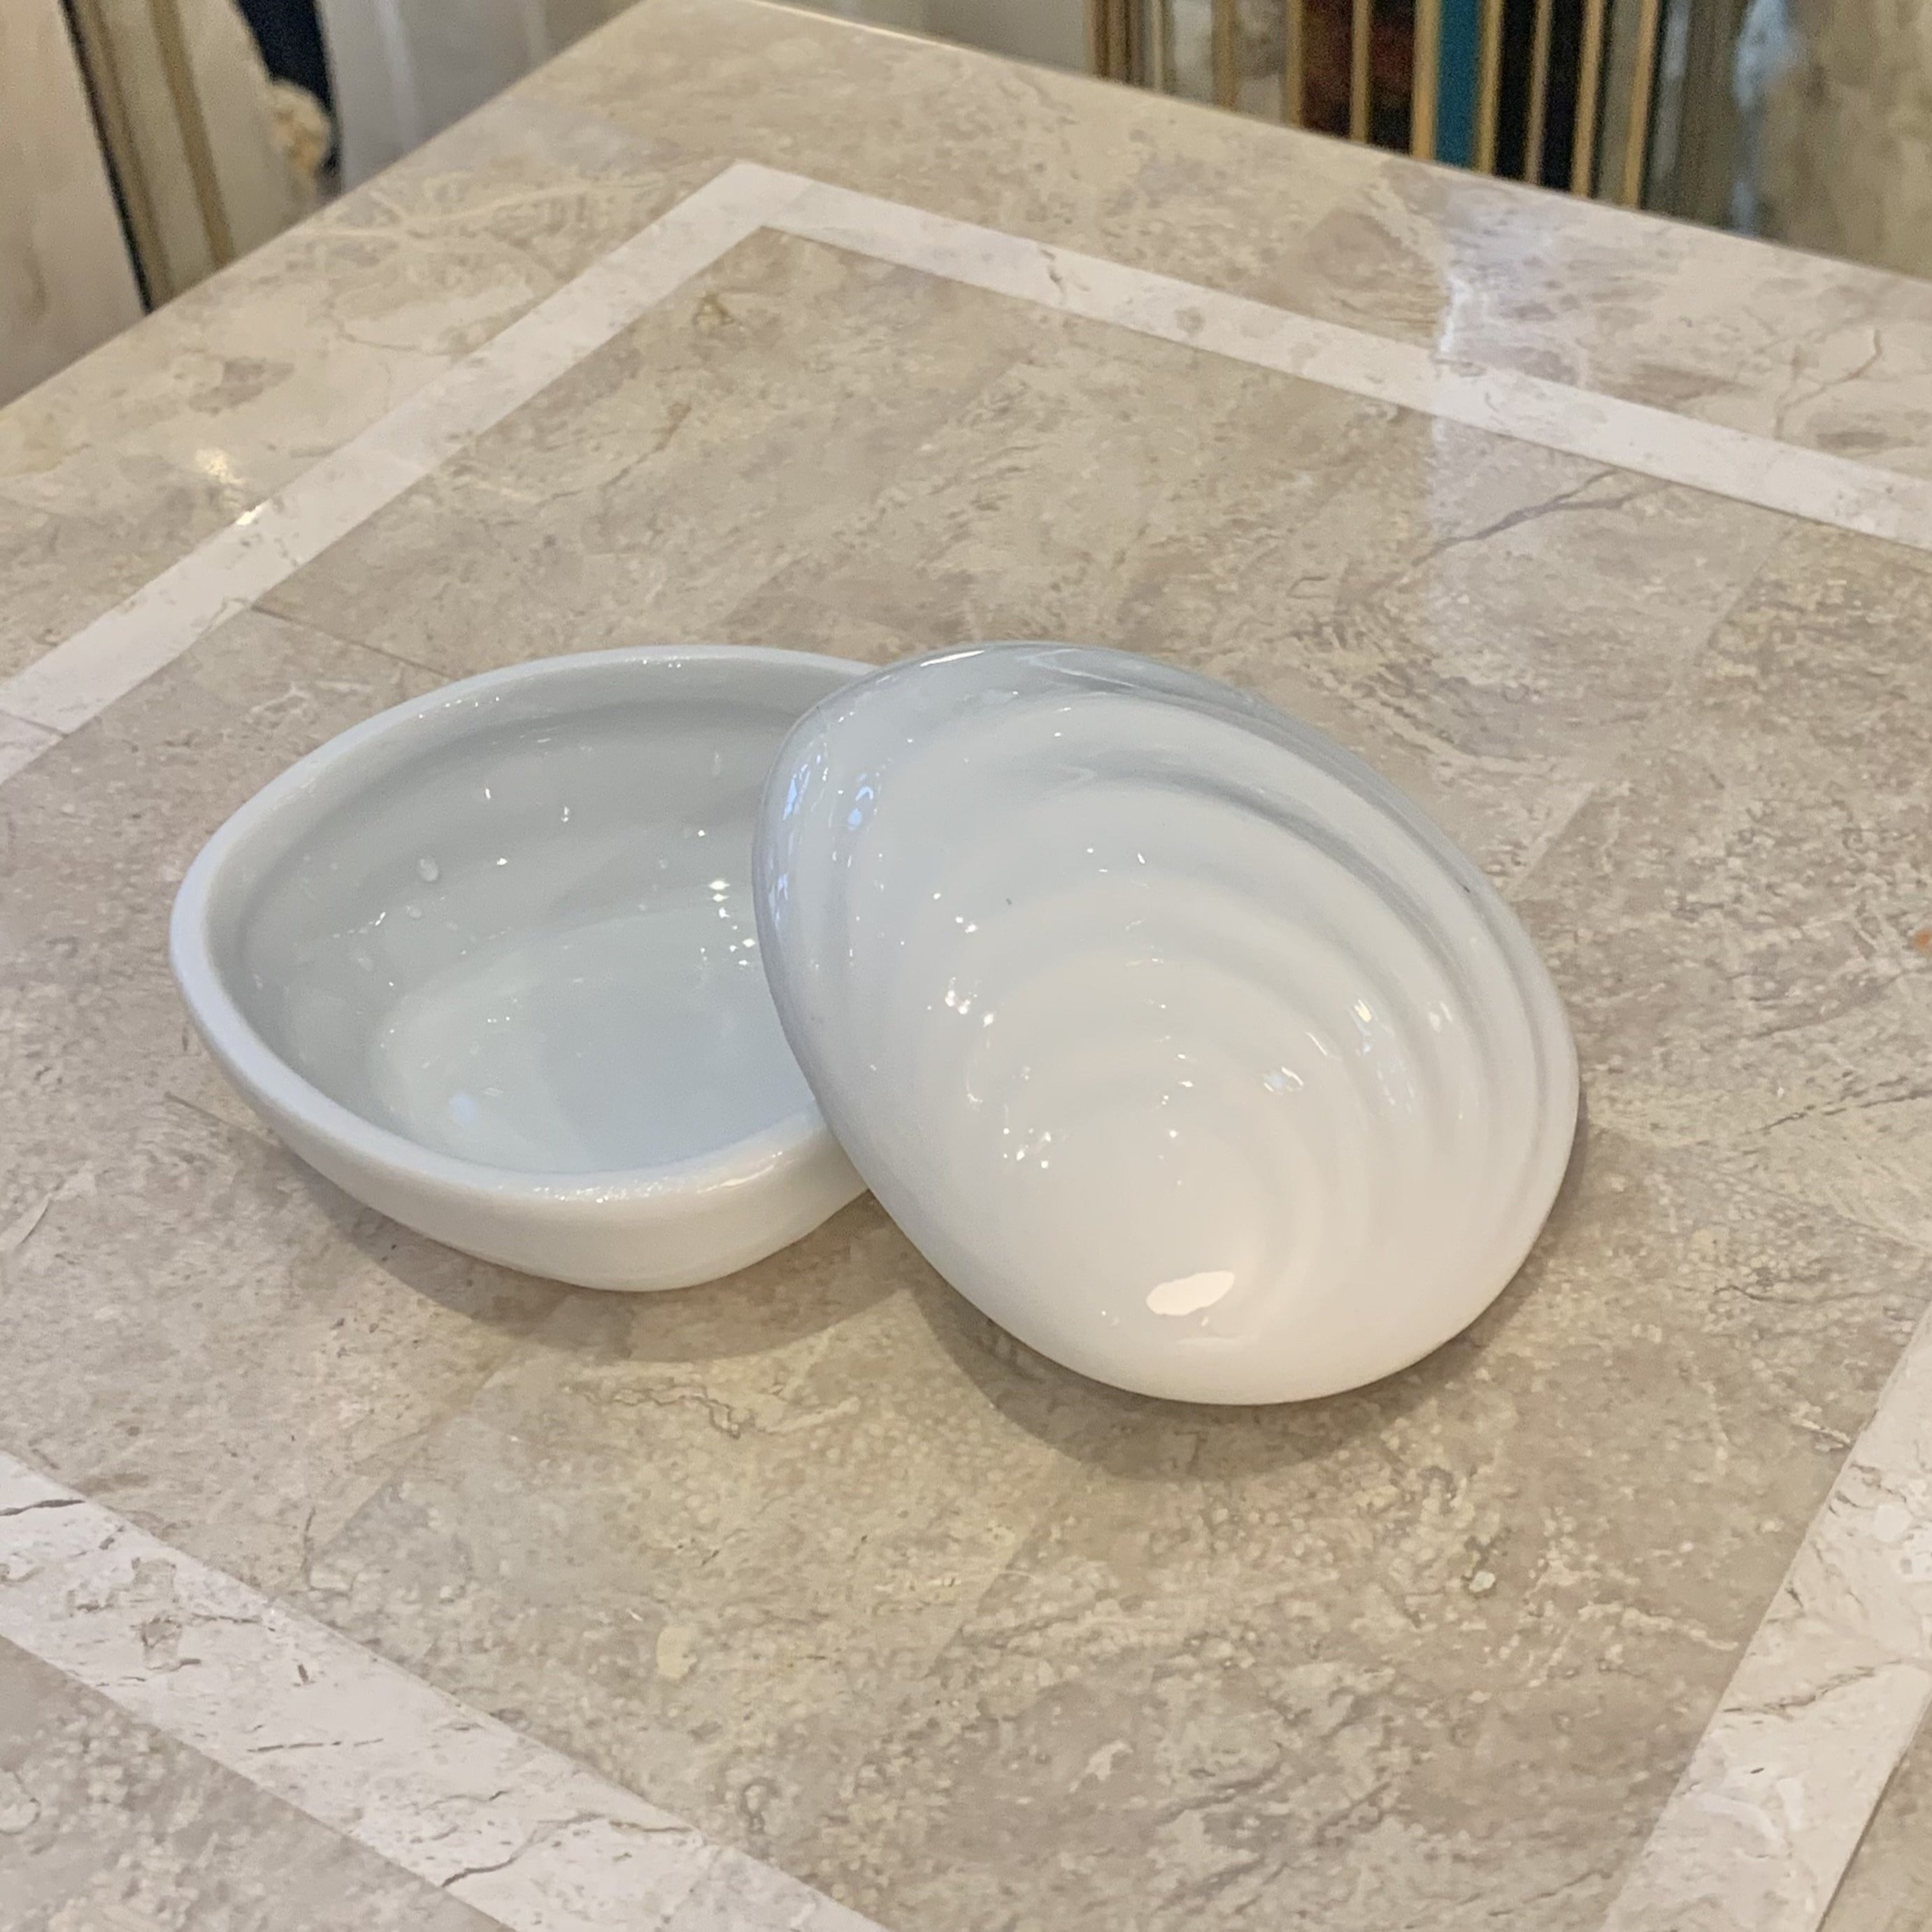 Vintage White Ceramic Clam Shell Dish